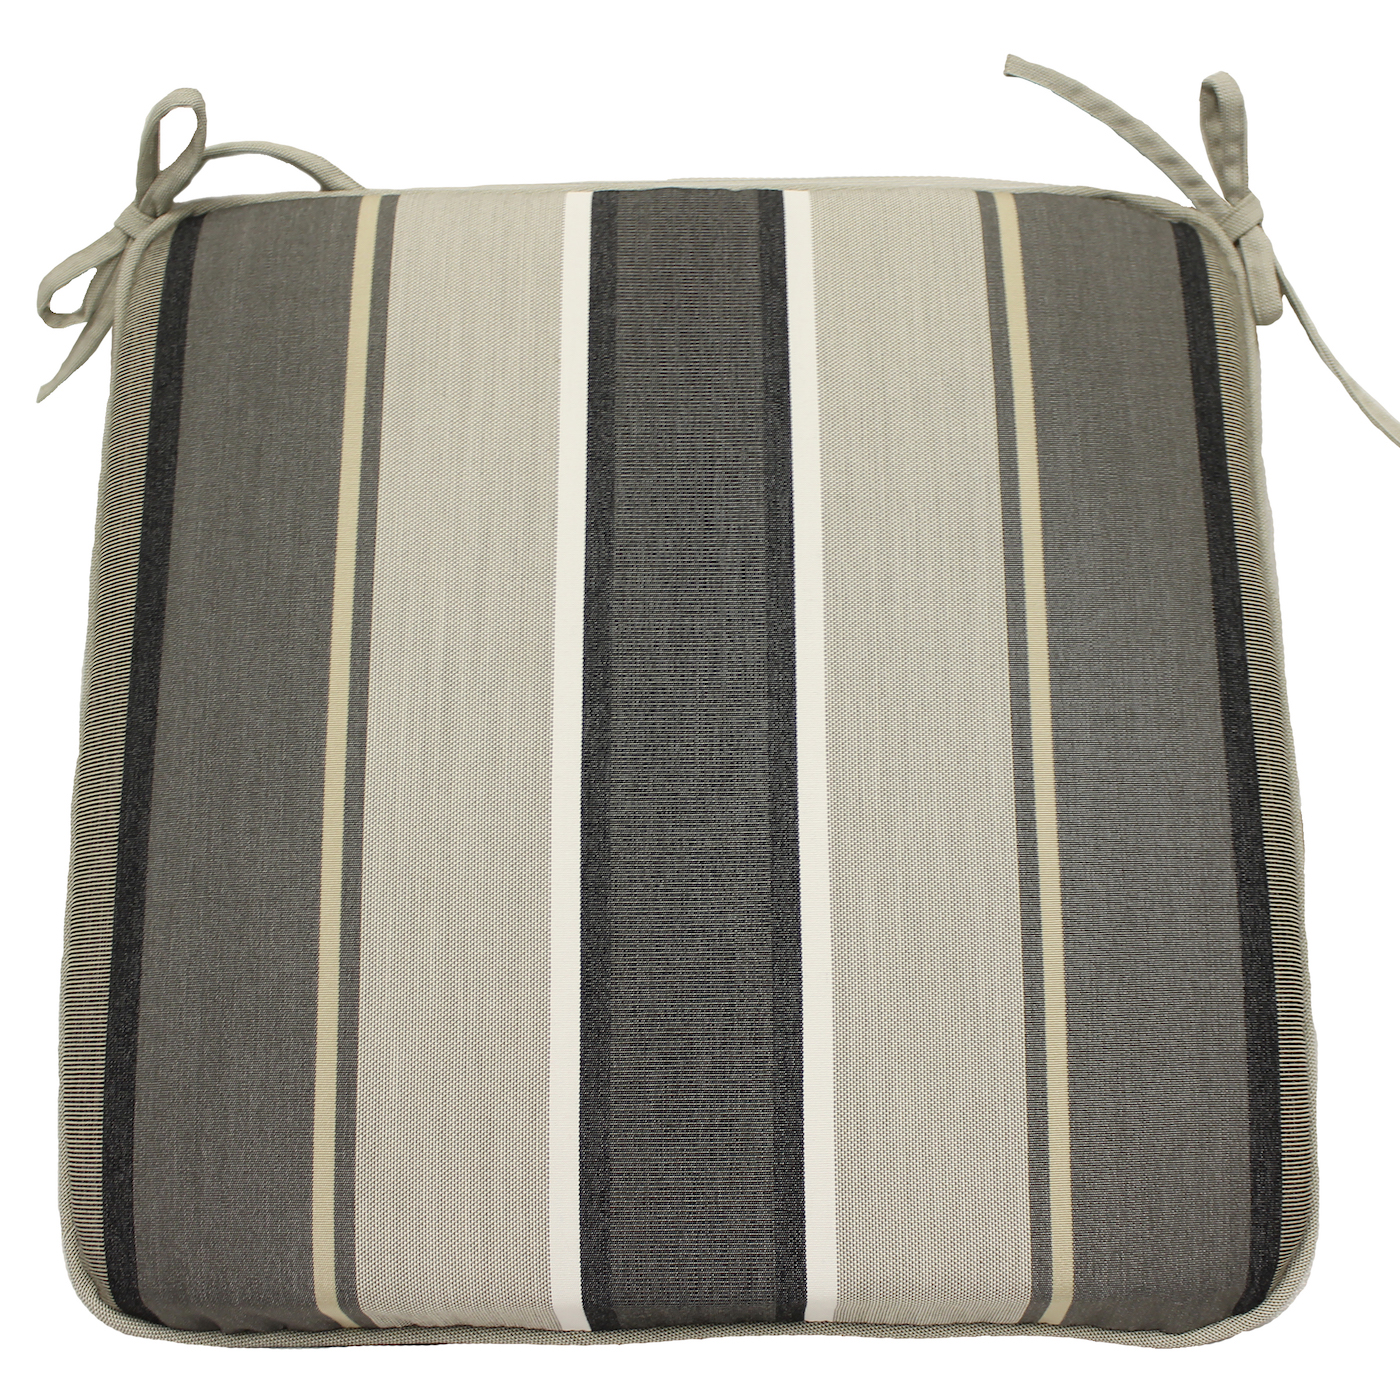 Better Homes and Gardens Linen Rev/Stripe Univer Seat Pad - Set of 2